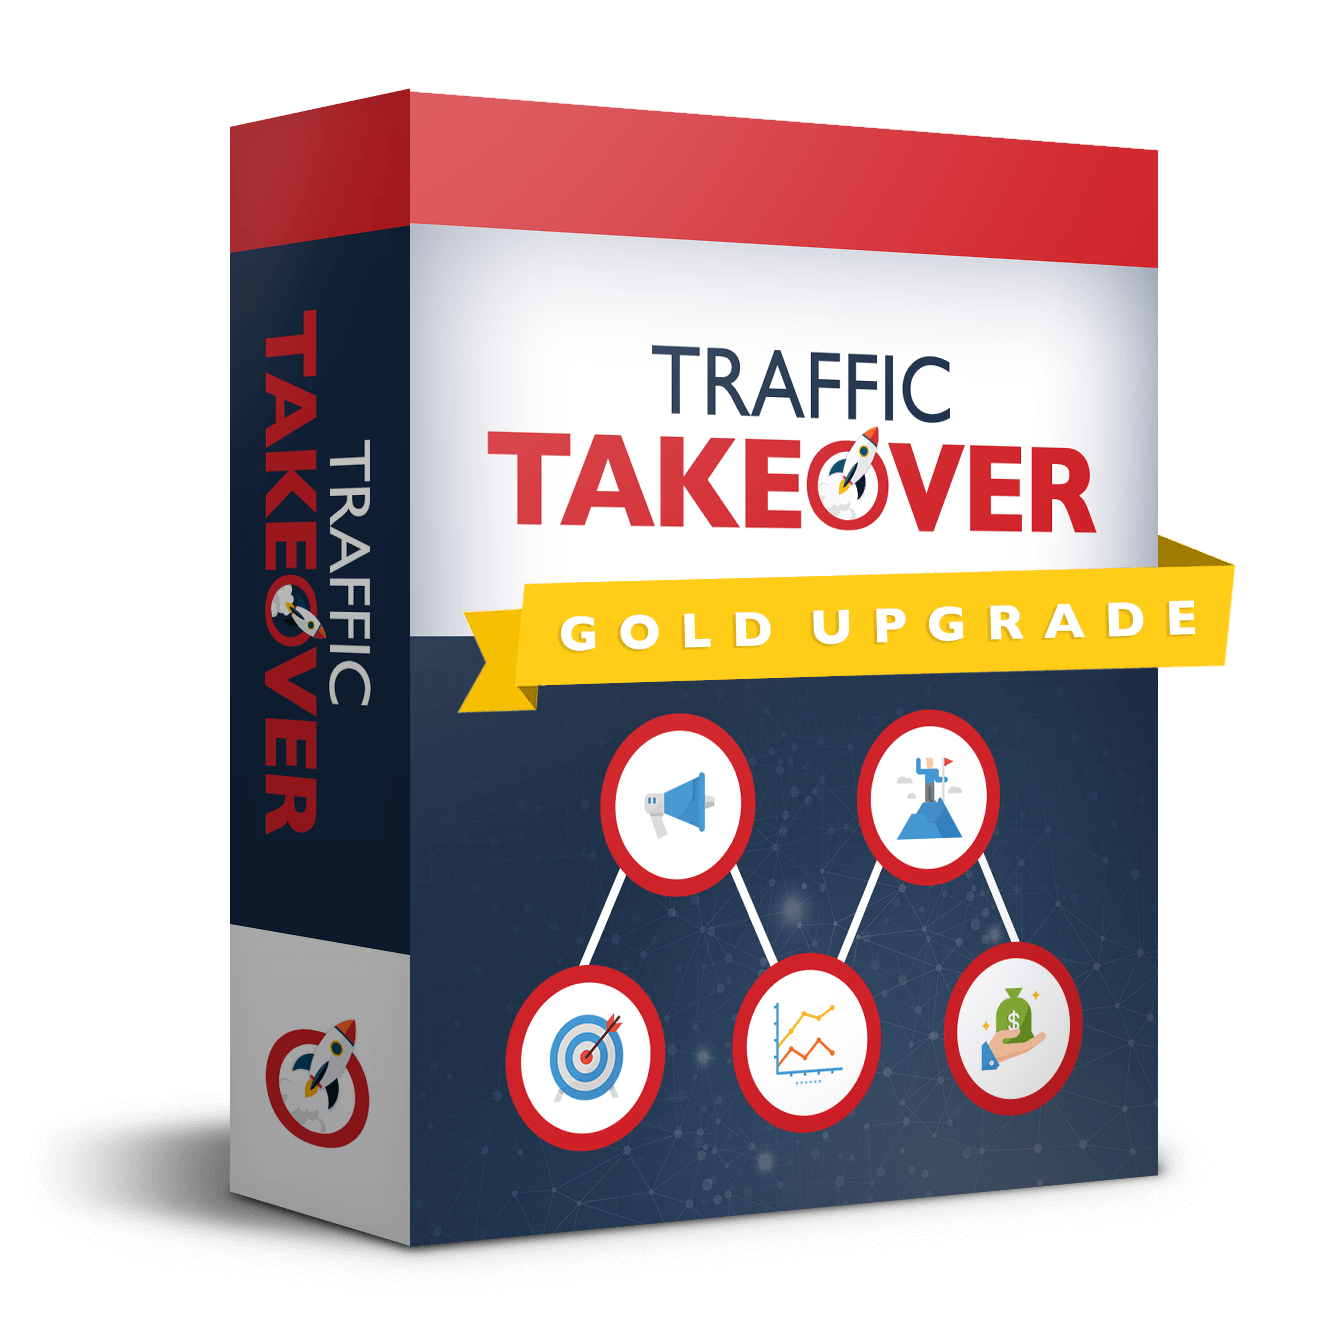 Traffic Takeover Triple Profit Bar Upgrade